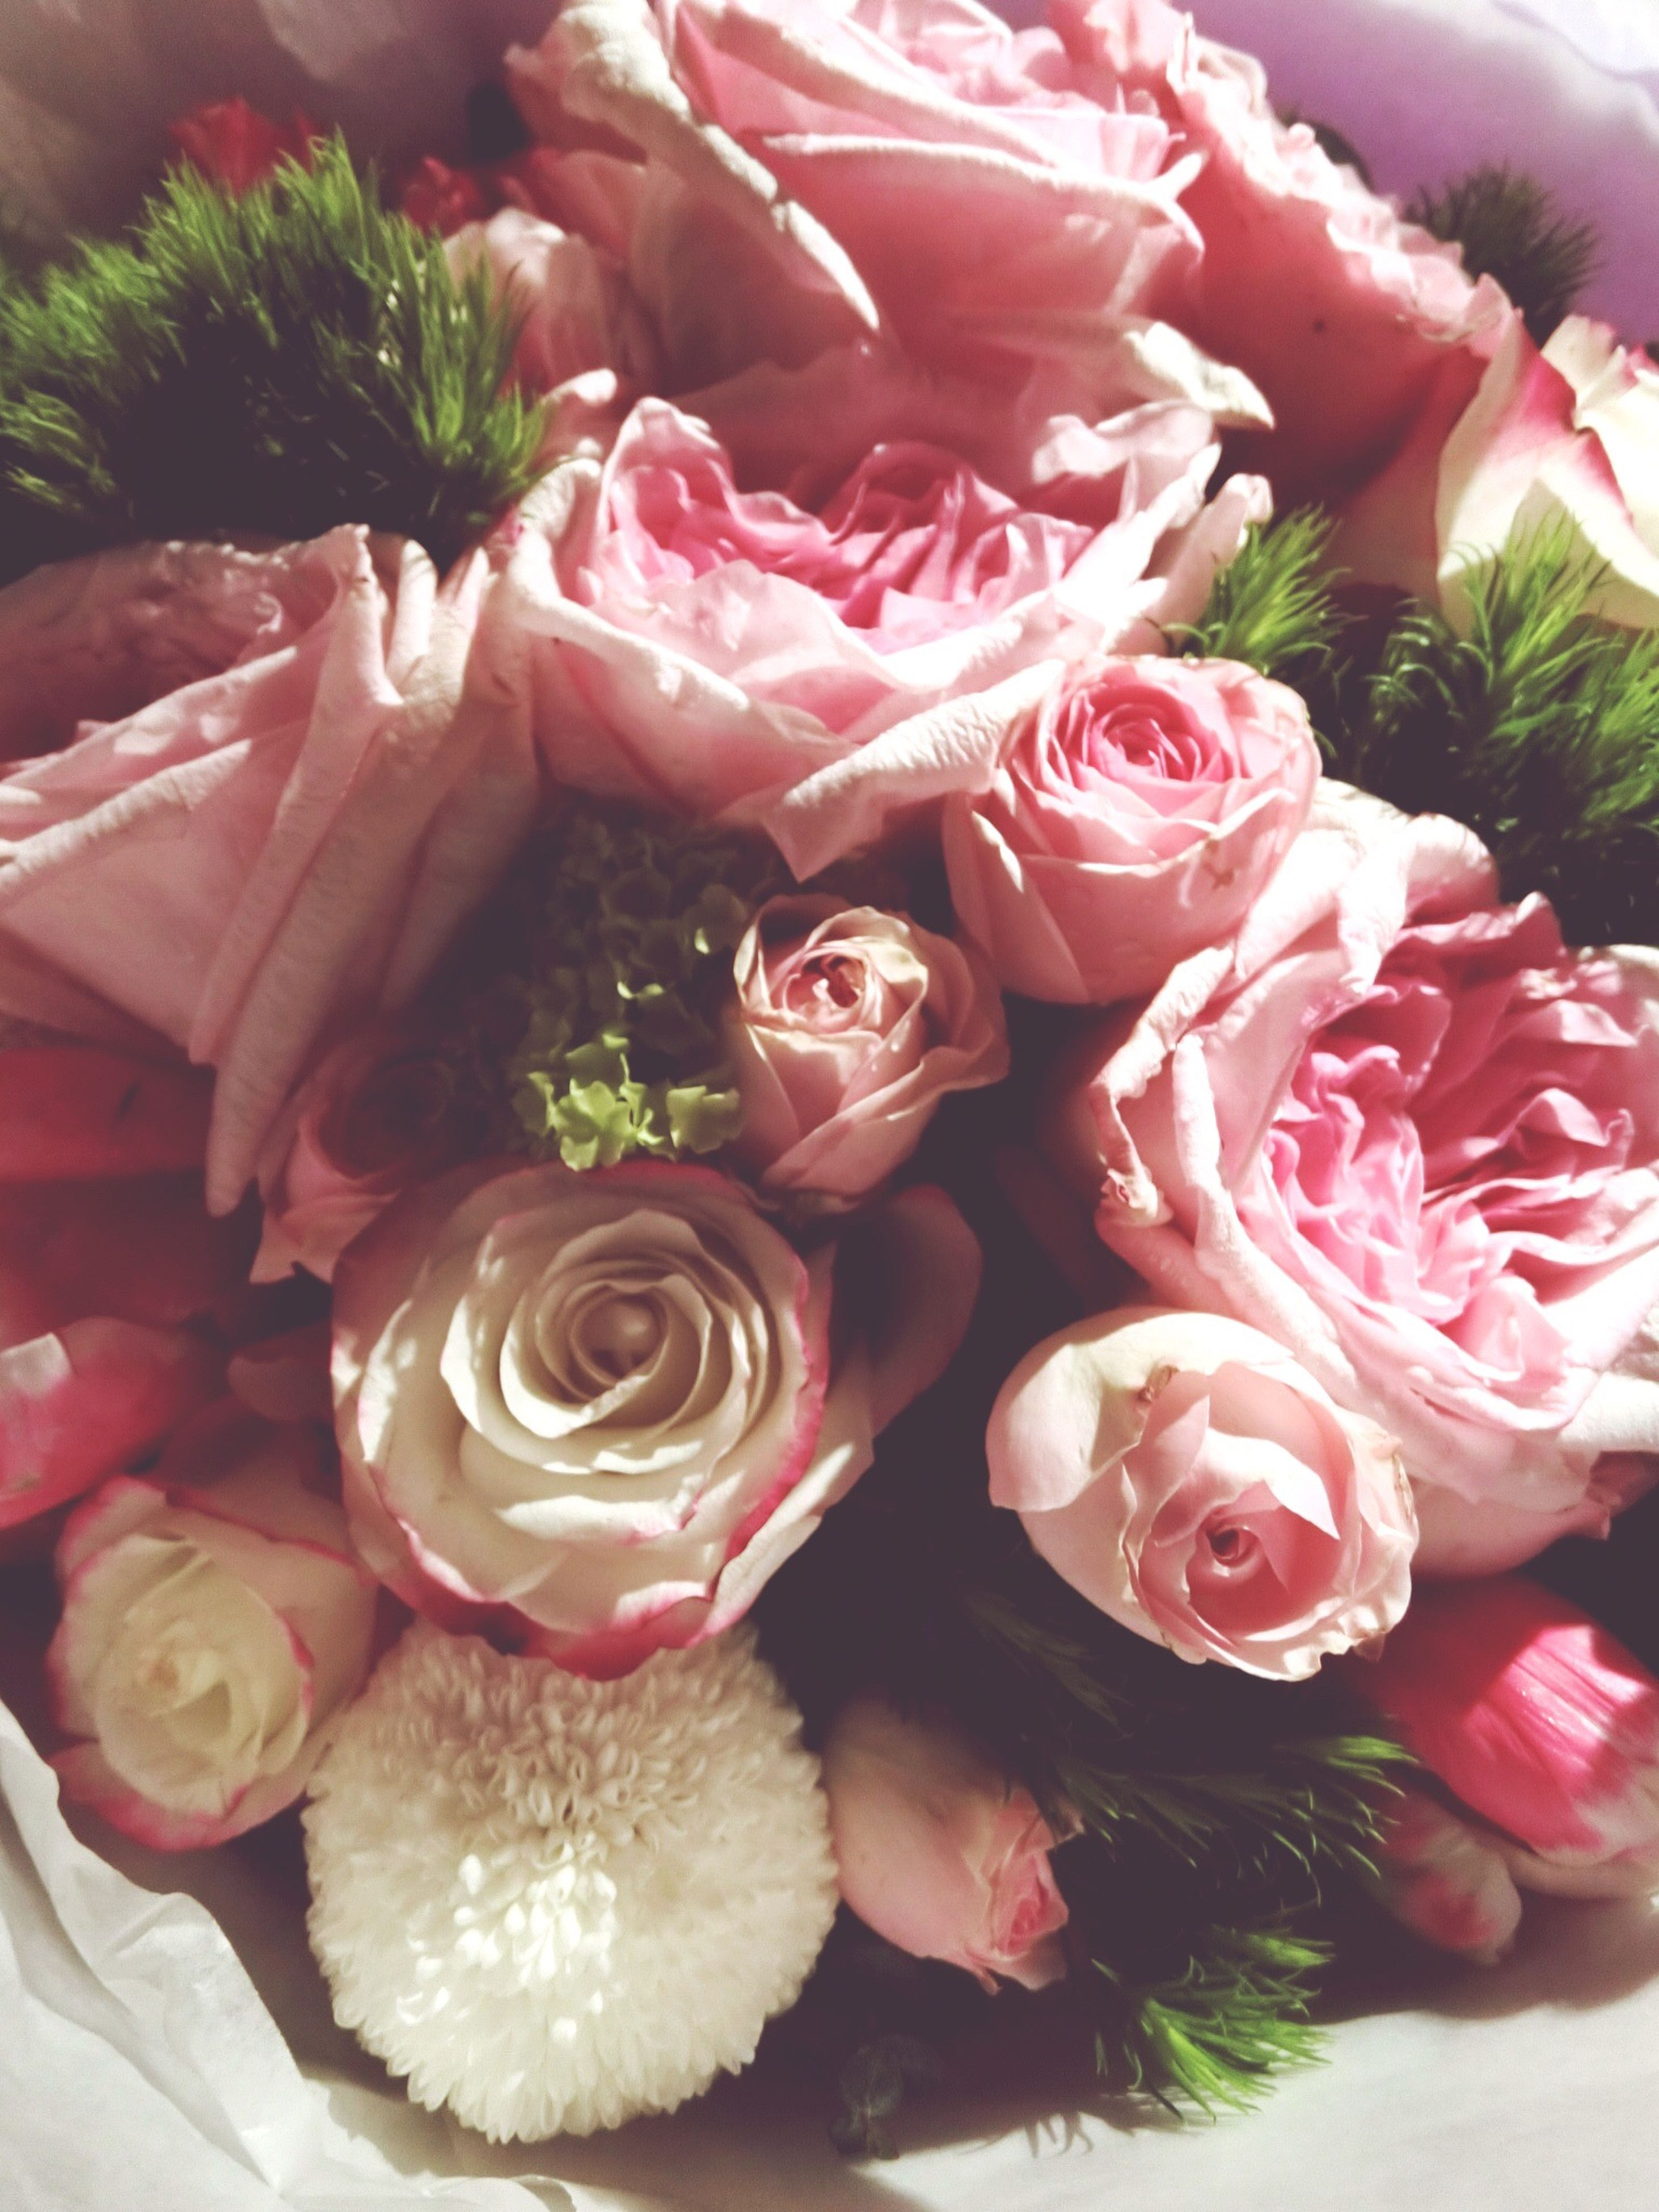 flower, freshness, petal, fragility, flower head, pink color, beauty in nature, rose - flower, close-up, indoors, nature, growth, bouquet, high angle view, pink, plant, bunch of flowers, no people, blooming, rose